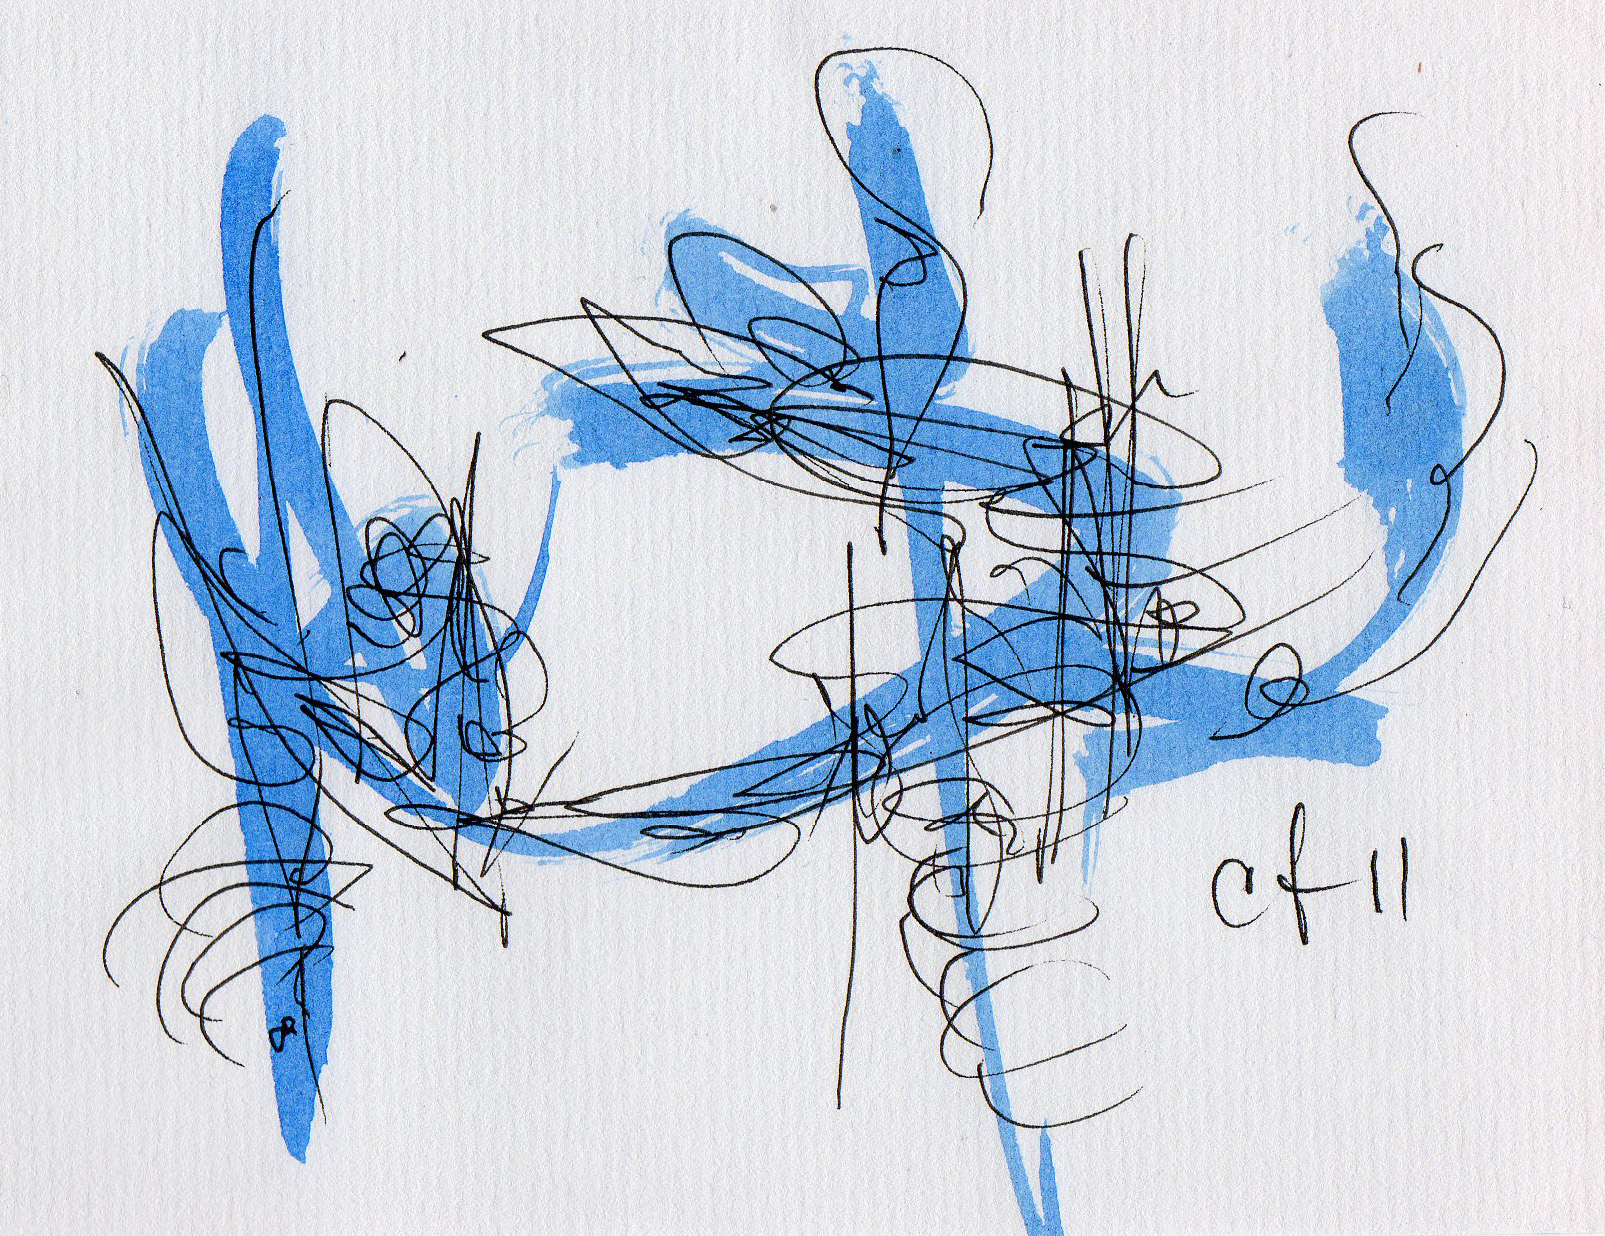 Asemic writing from 2011 by Cecil Touchon